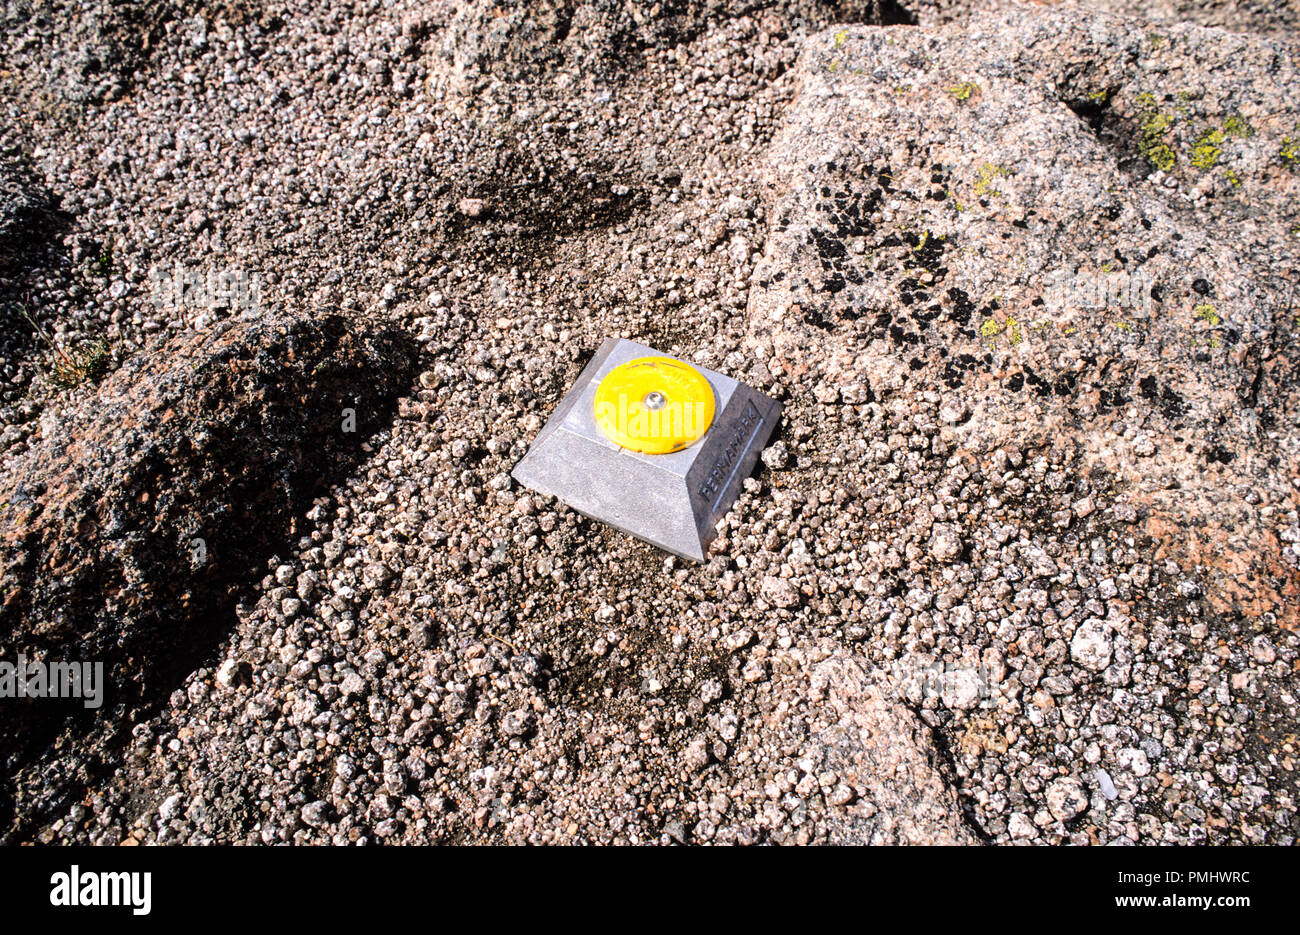 Stud for Stabilising Footpaths, NR Aviemore, Mt Cairngorm, Cairngorm Mountain Range, Highlands, Scotland, UK, GB. - Stock Image